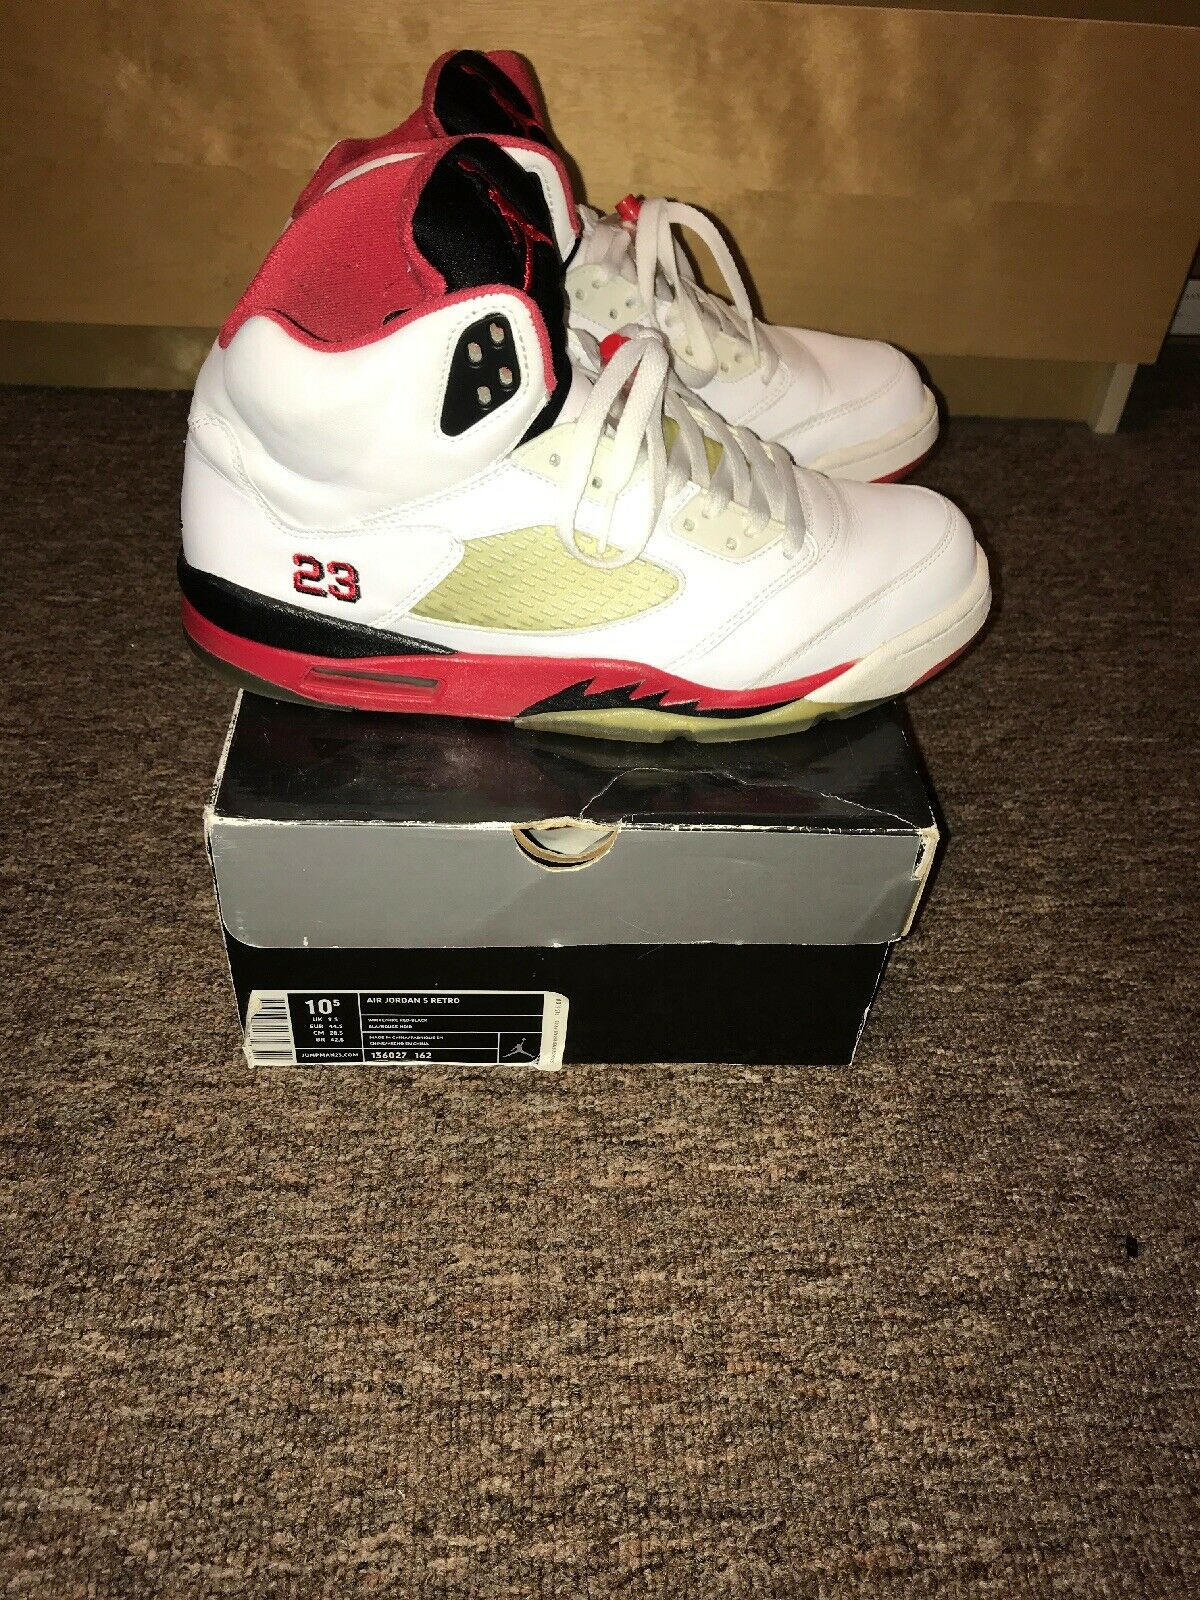 online retailer fed80 d6a36 Nike Air Jordan 5 V Retro Fire Red 2006 2006 2006 Size 10.5 7c2660